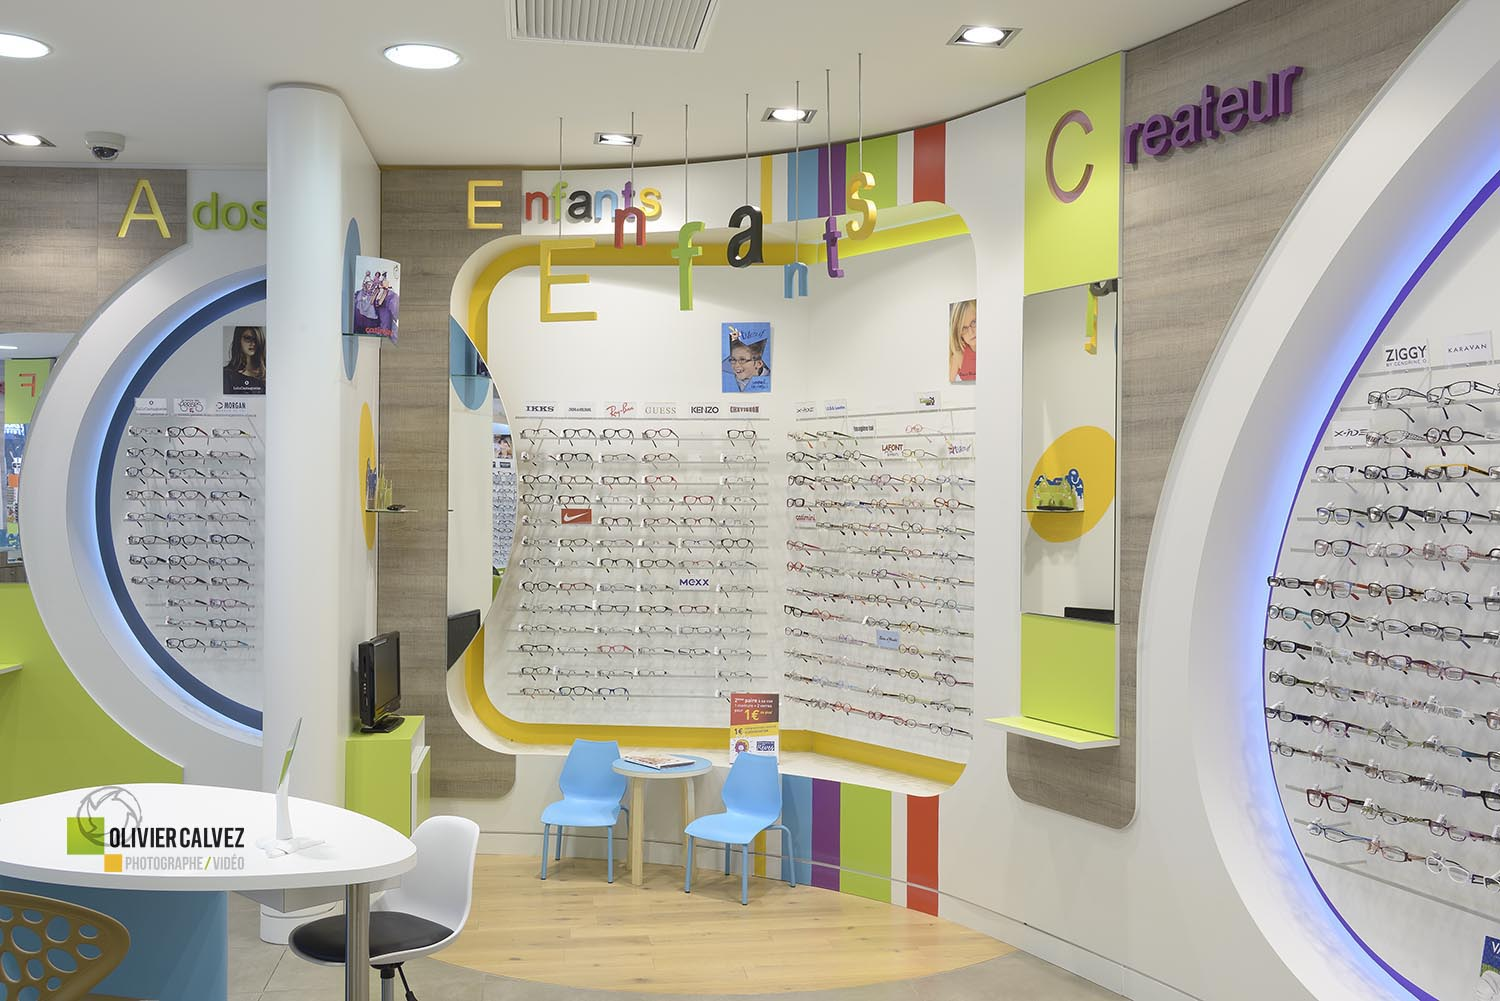 Agencement magasin opticiens mutualistes atoll angers studio sd - Atoll angers magasin ...